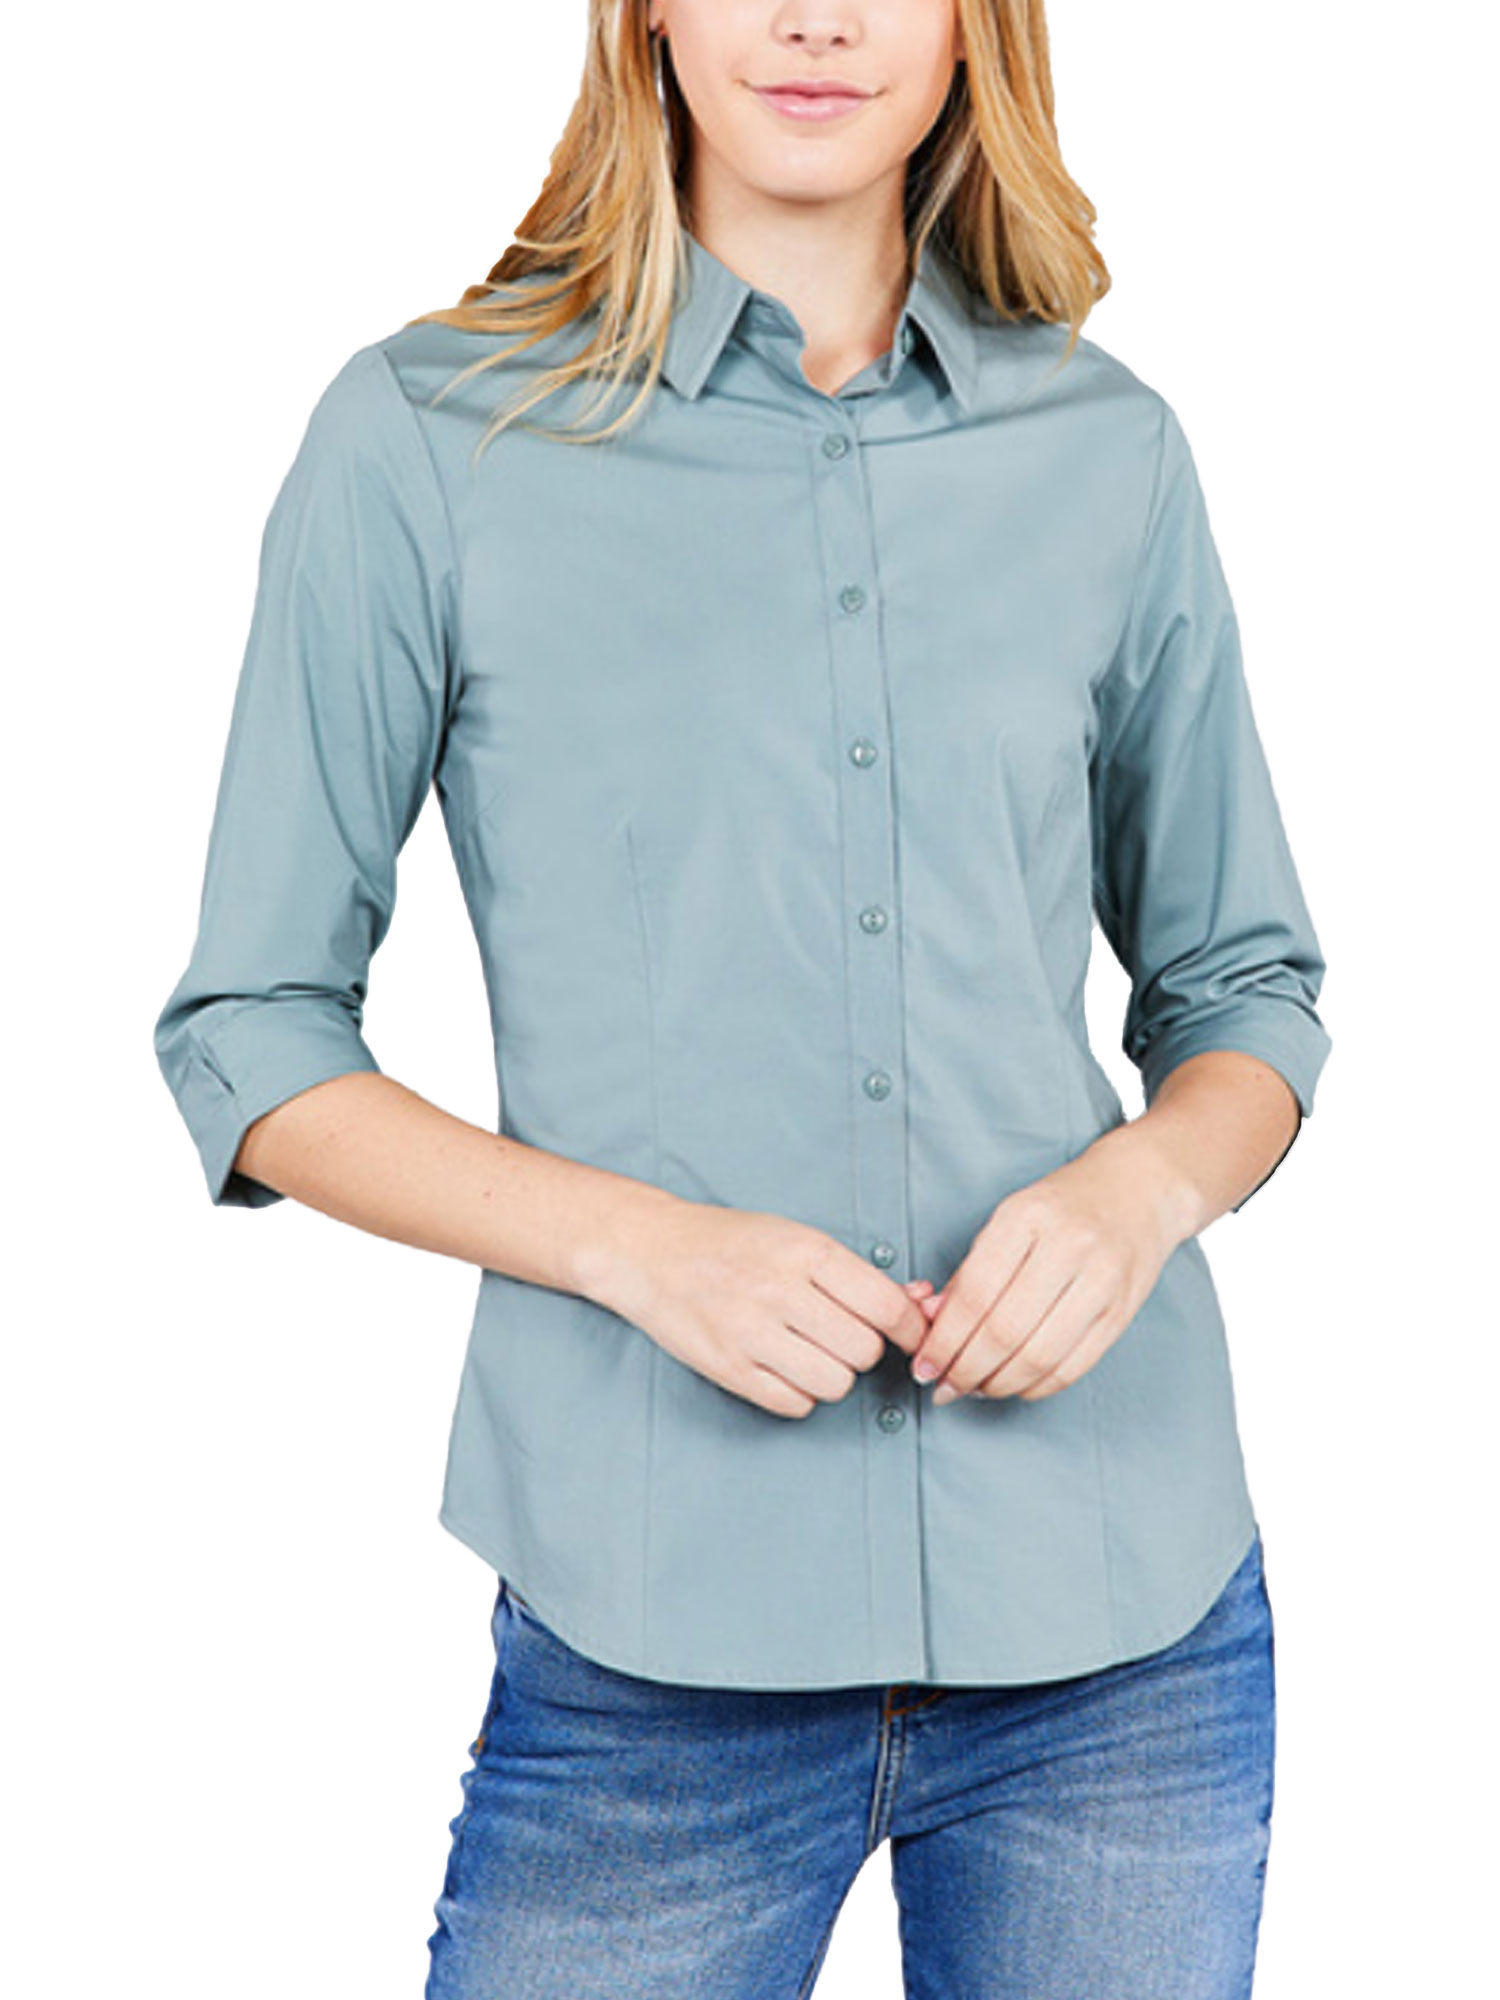 KOGMO Womens Classic Solid 3/4 Sleeve Button Down Blouse Dress Shirt